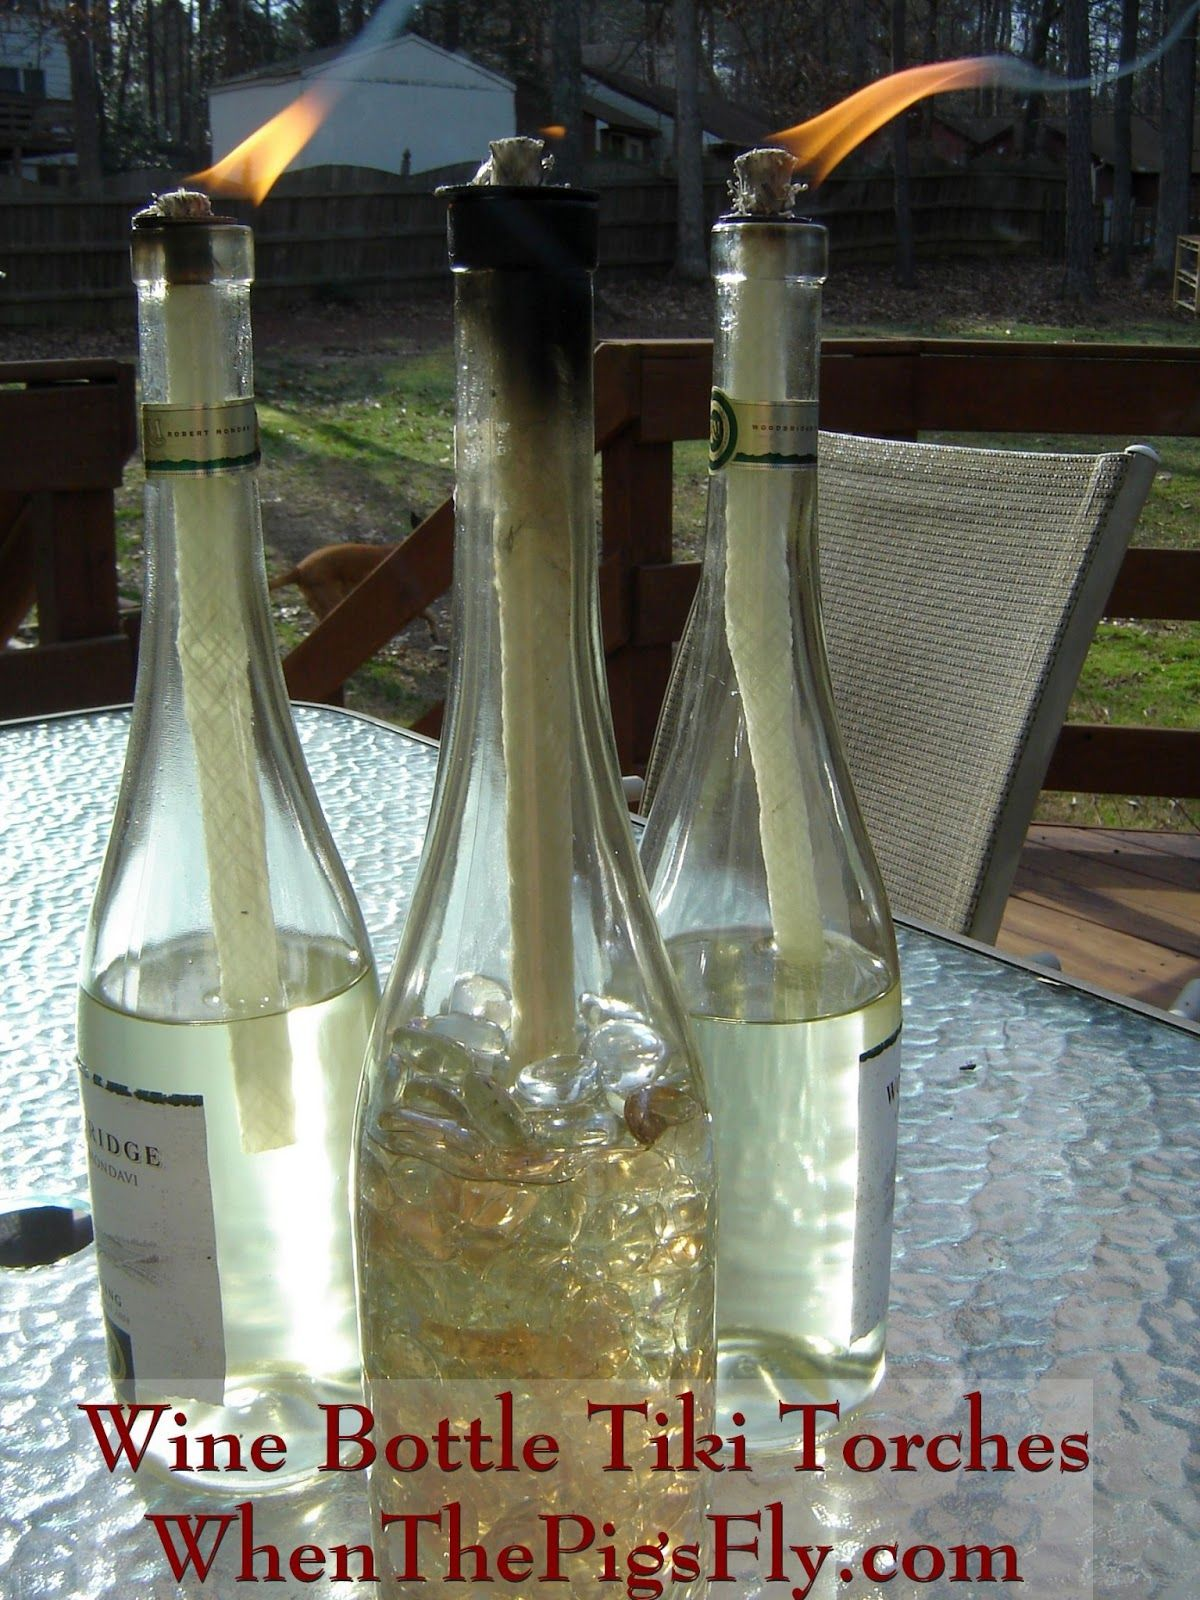 What to do with empty wine bottles - Reuse Your Empty Wine Bottles By Making Mosquito Combating Tiki Torches With Them Citronella Oil When The Pigs Fly Diy Wine Bottle Tiki Torches